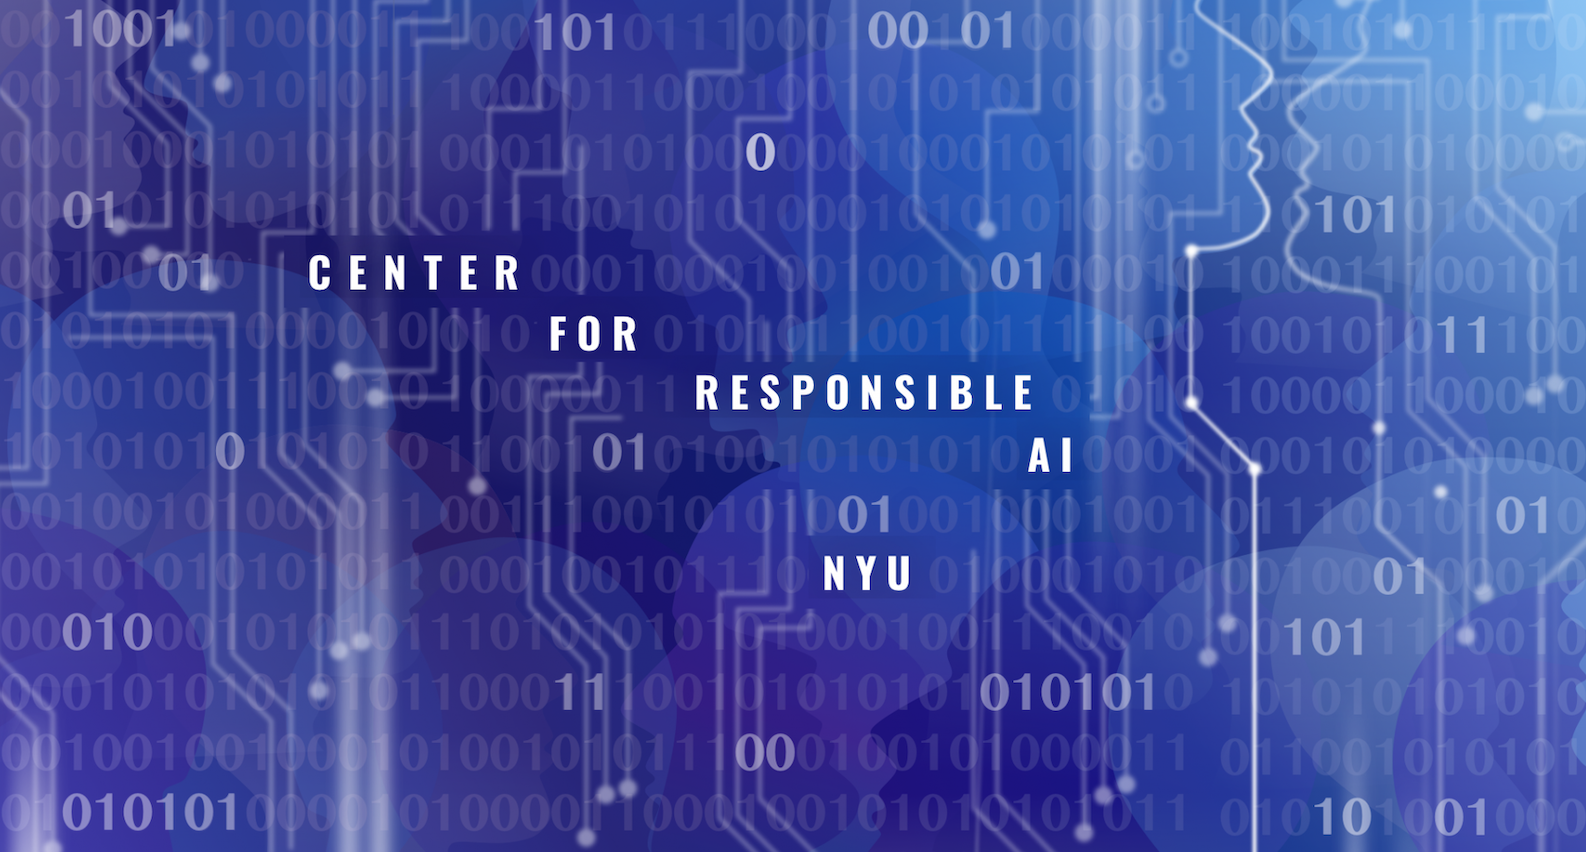 Center for responsible AI